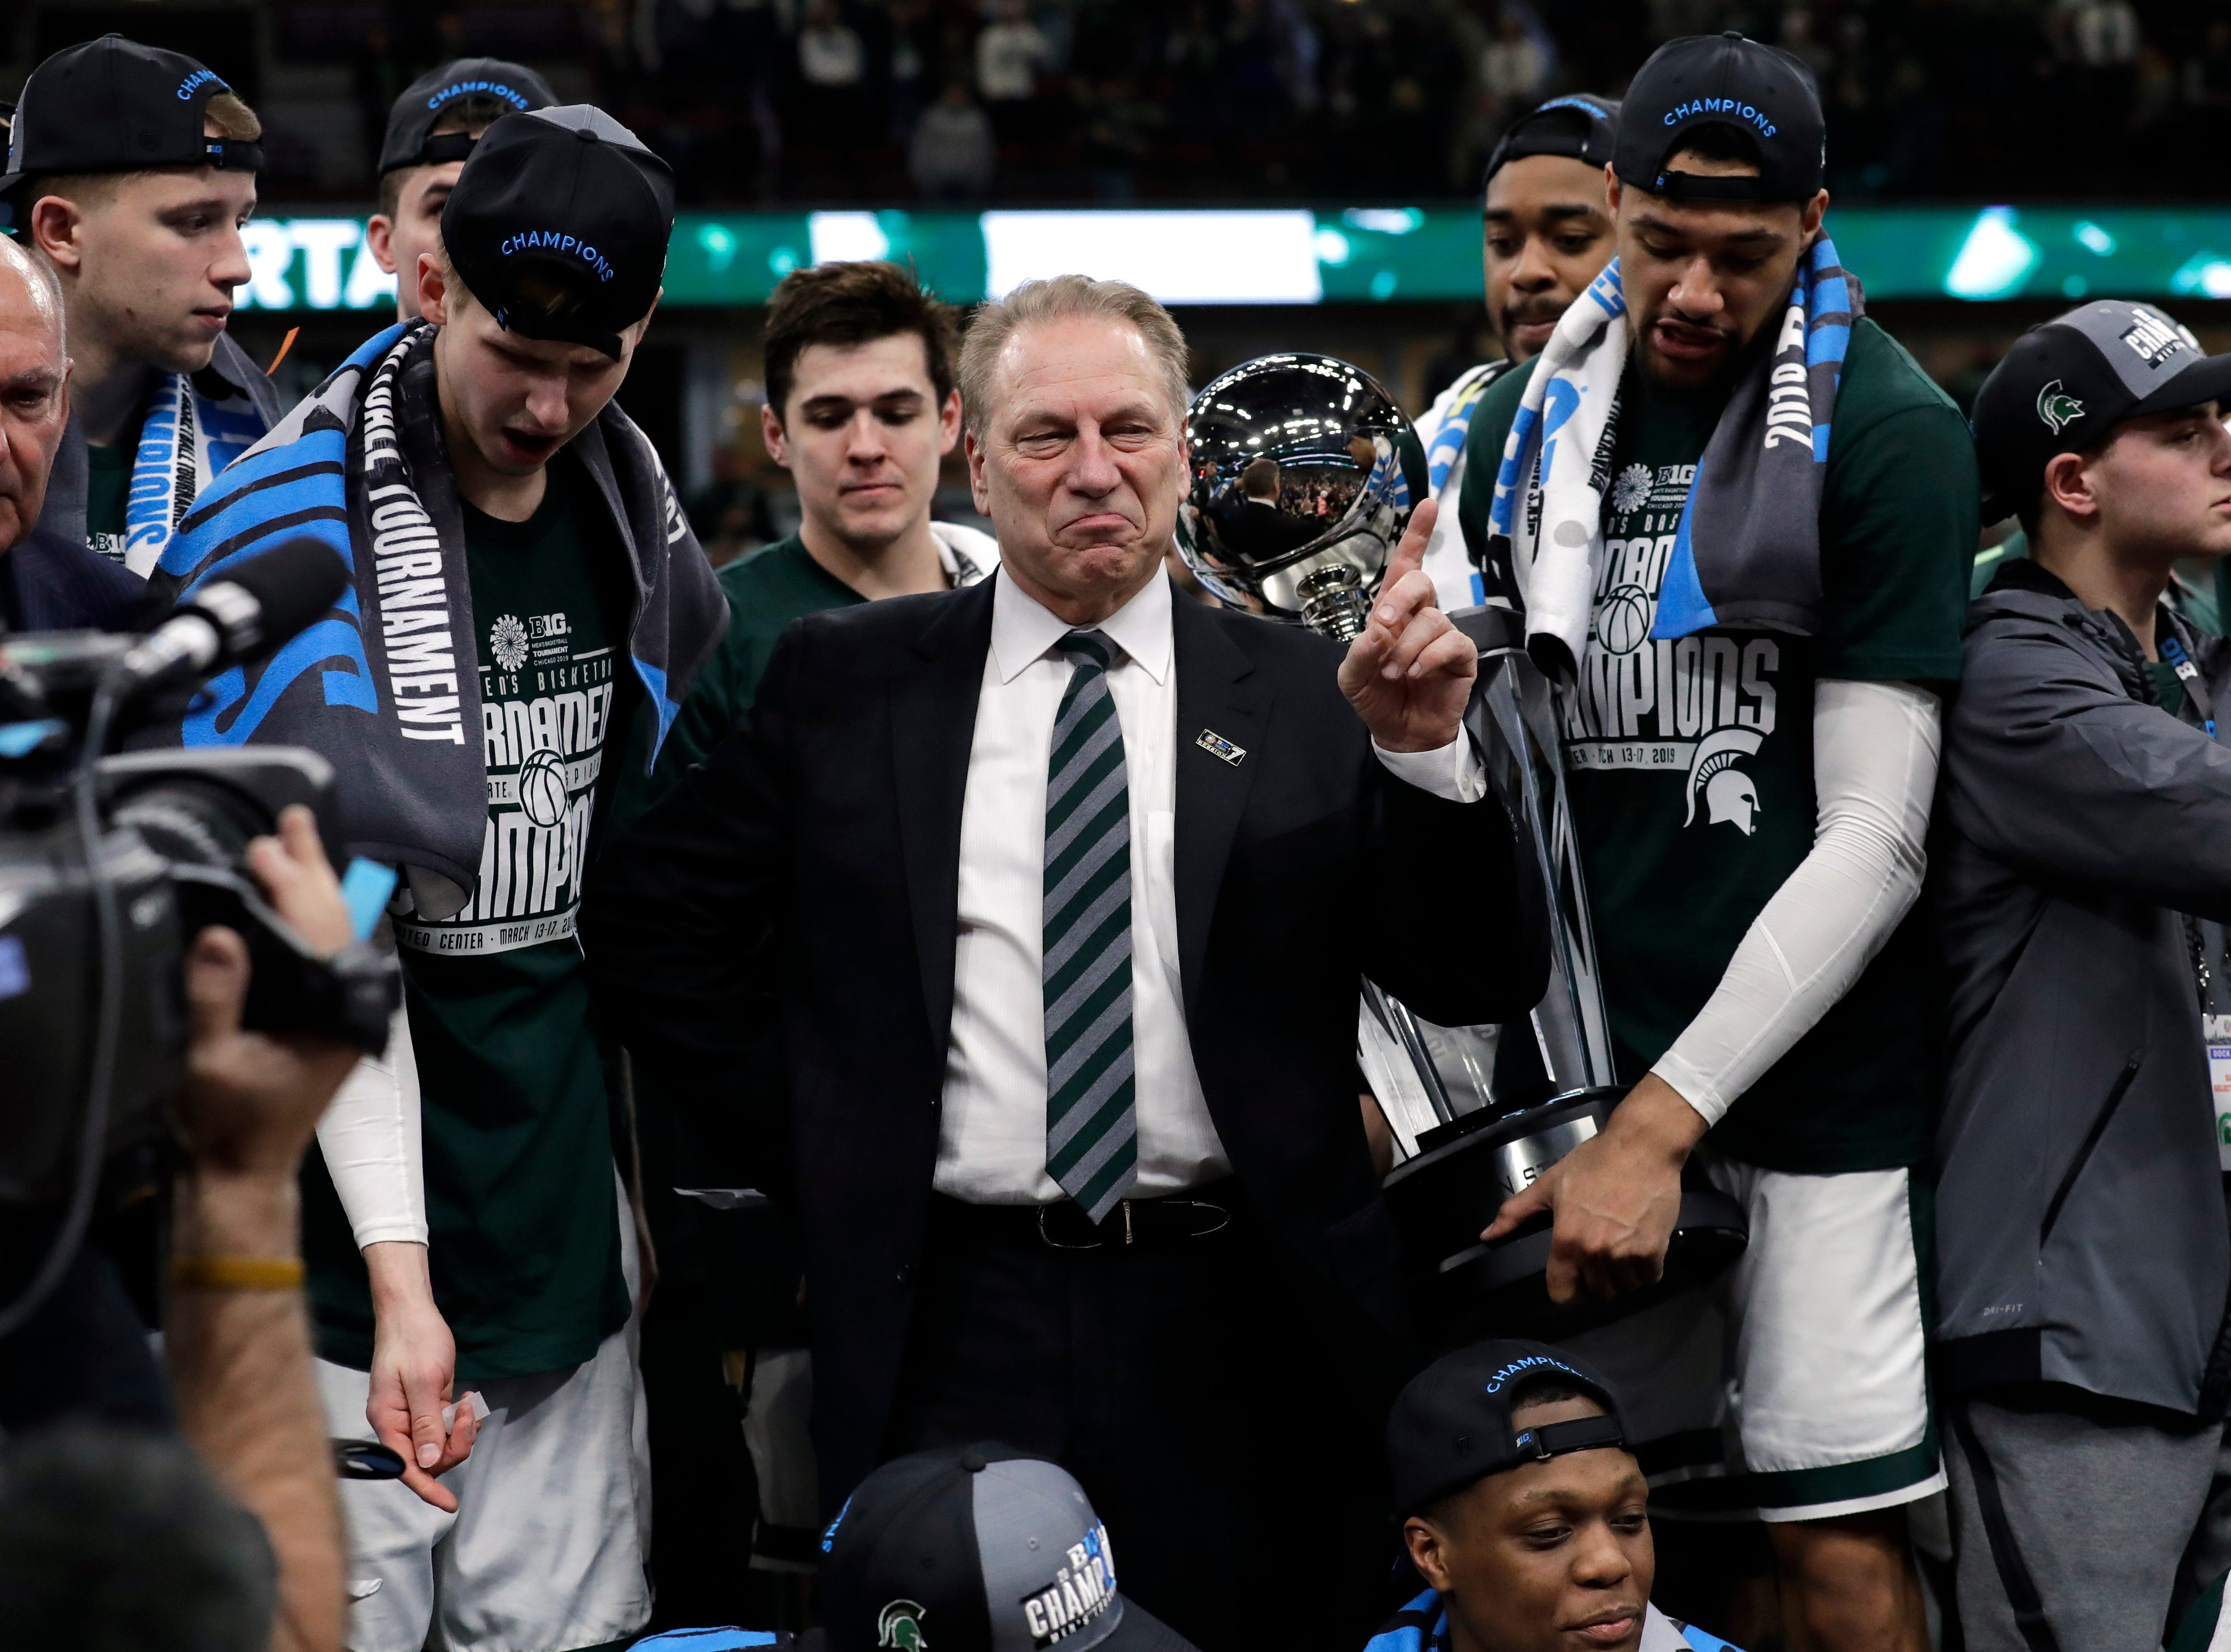 Michigan State head coach Tom Izzo celebrates with his team after defeating Michigan 65-60 in an NCAA college basketball championship game in the Big Ten Conference tournament, Sunday, March 17, 2019, in Chicago. (AP Photo/Nam Y. Huh)